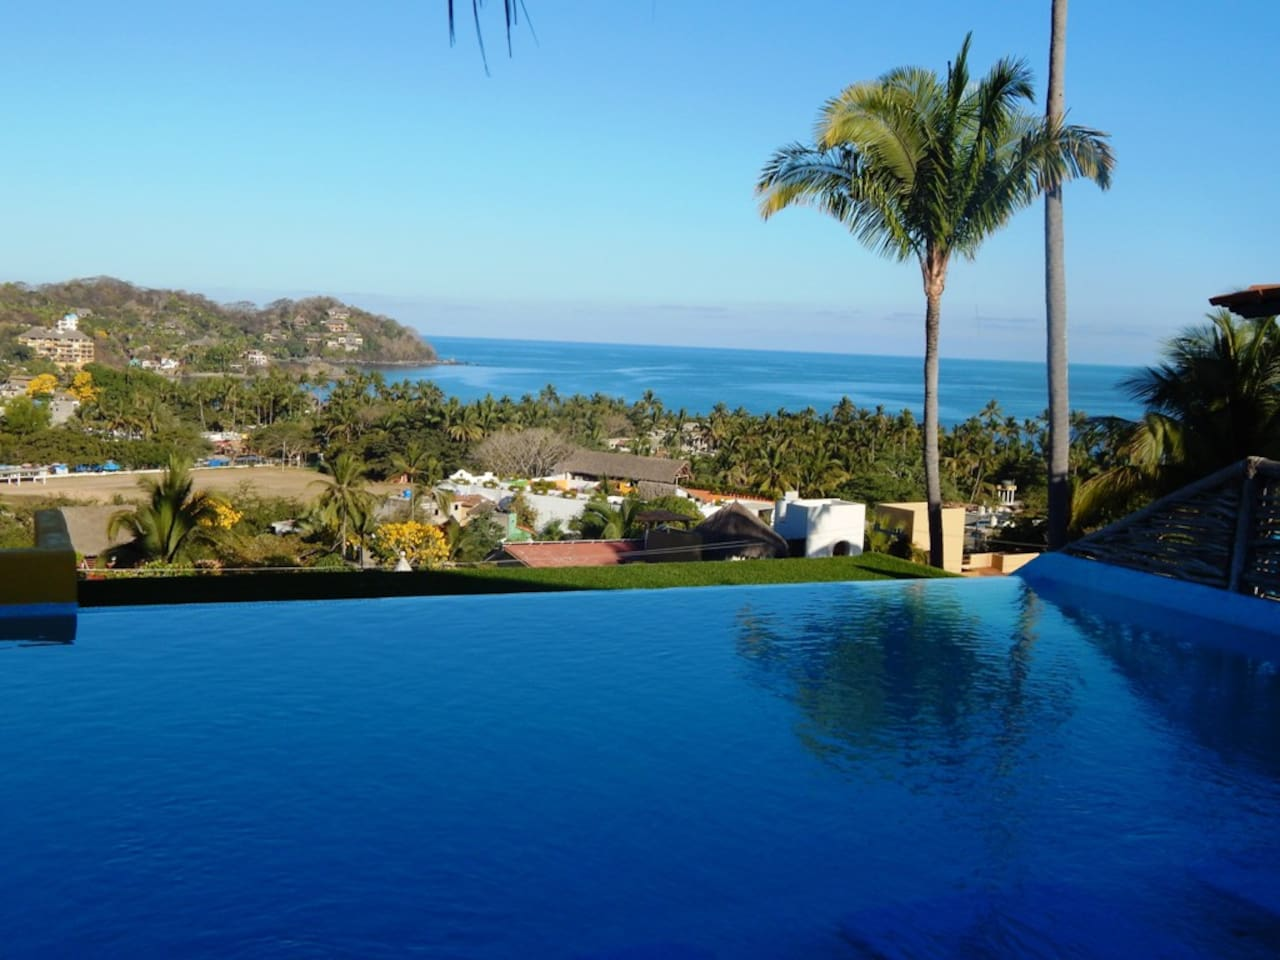 A place to relax and enjoy the magic of Sayulita